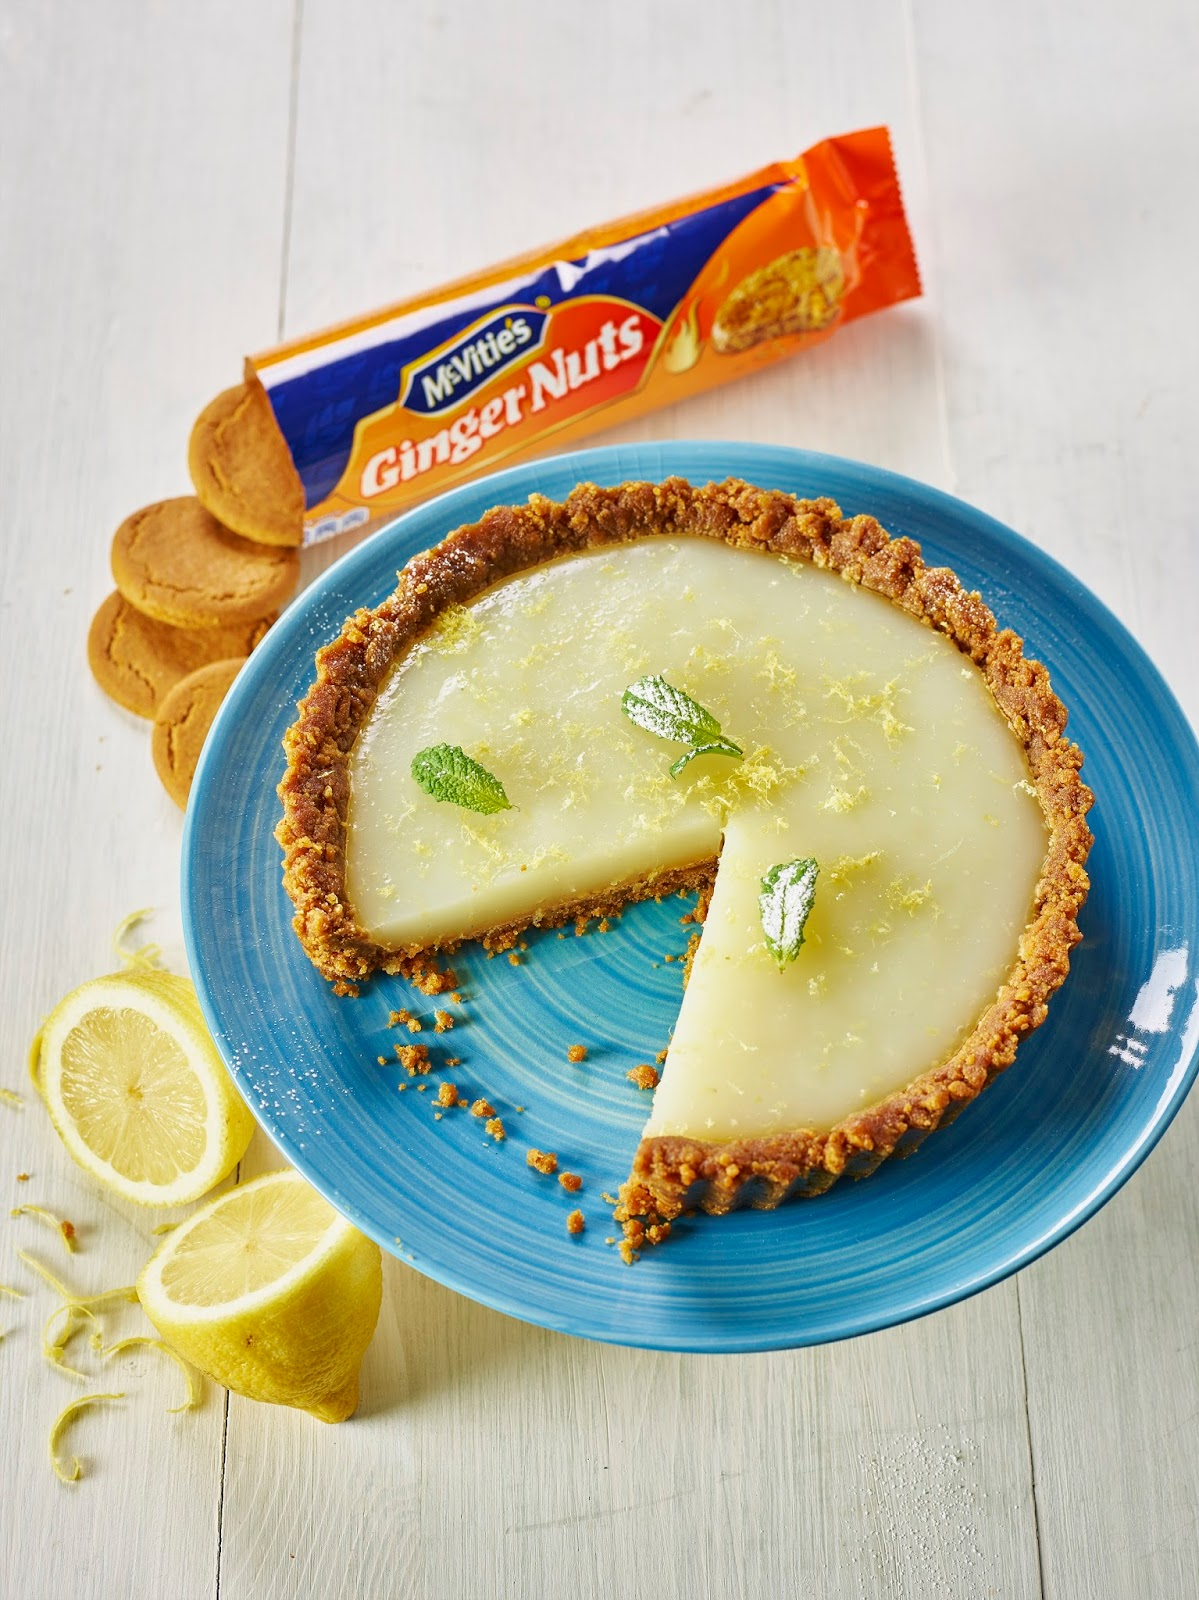 McVitie's Ginger Nuts and Lemon Crunch Vegan Tart